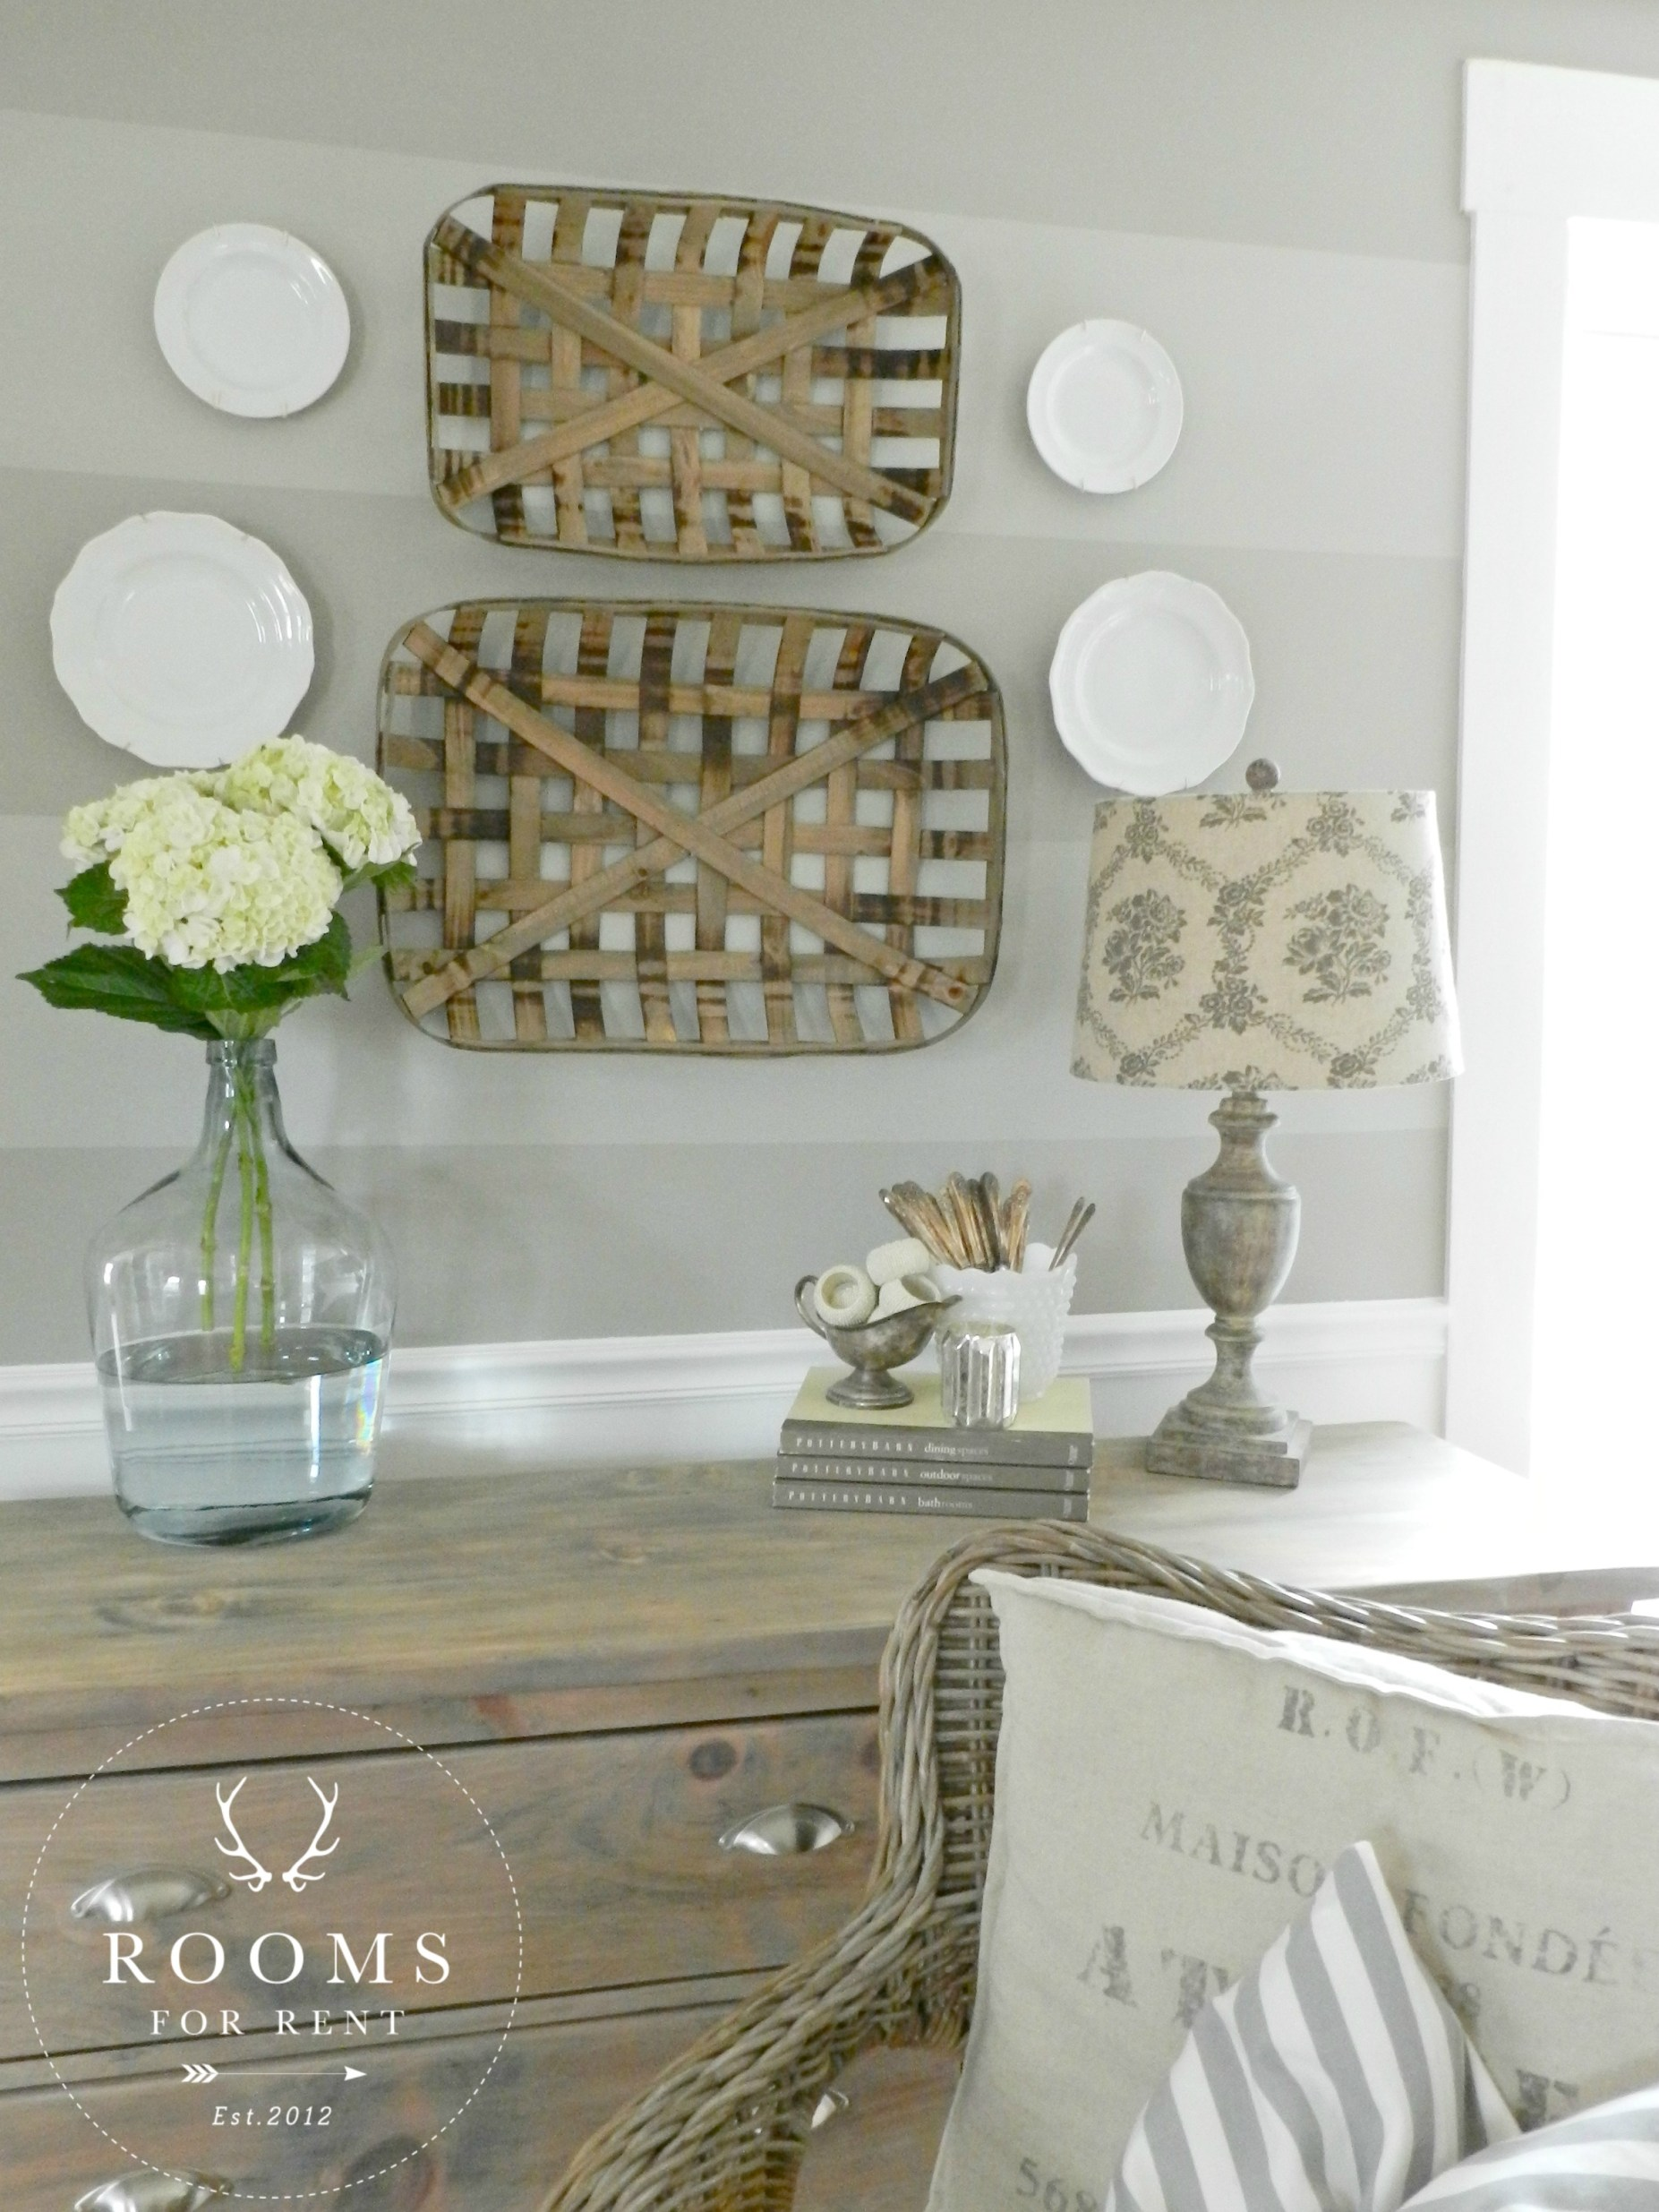 Tobacco baskets wall decor a giveaway rooms for rent blog - Wall hanging decoration ideas ...